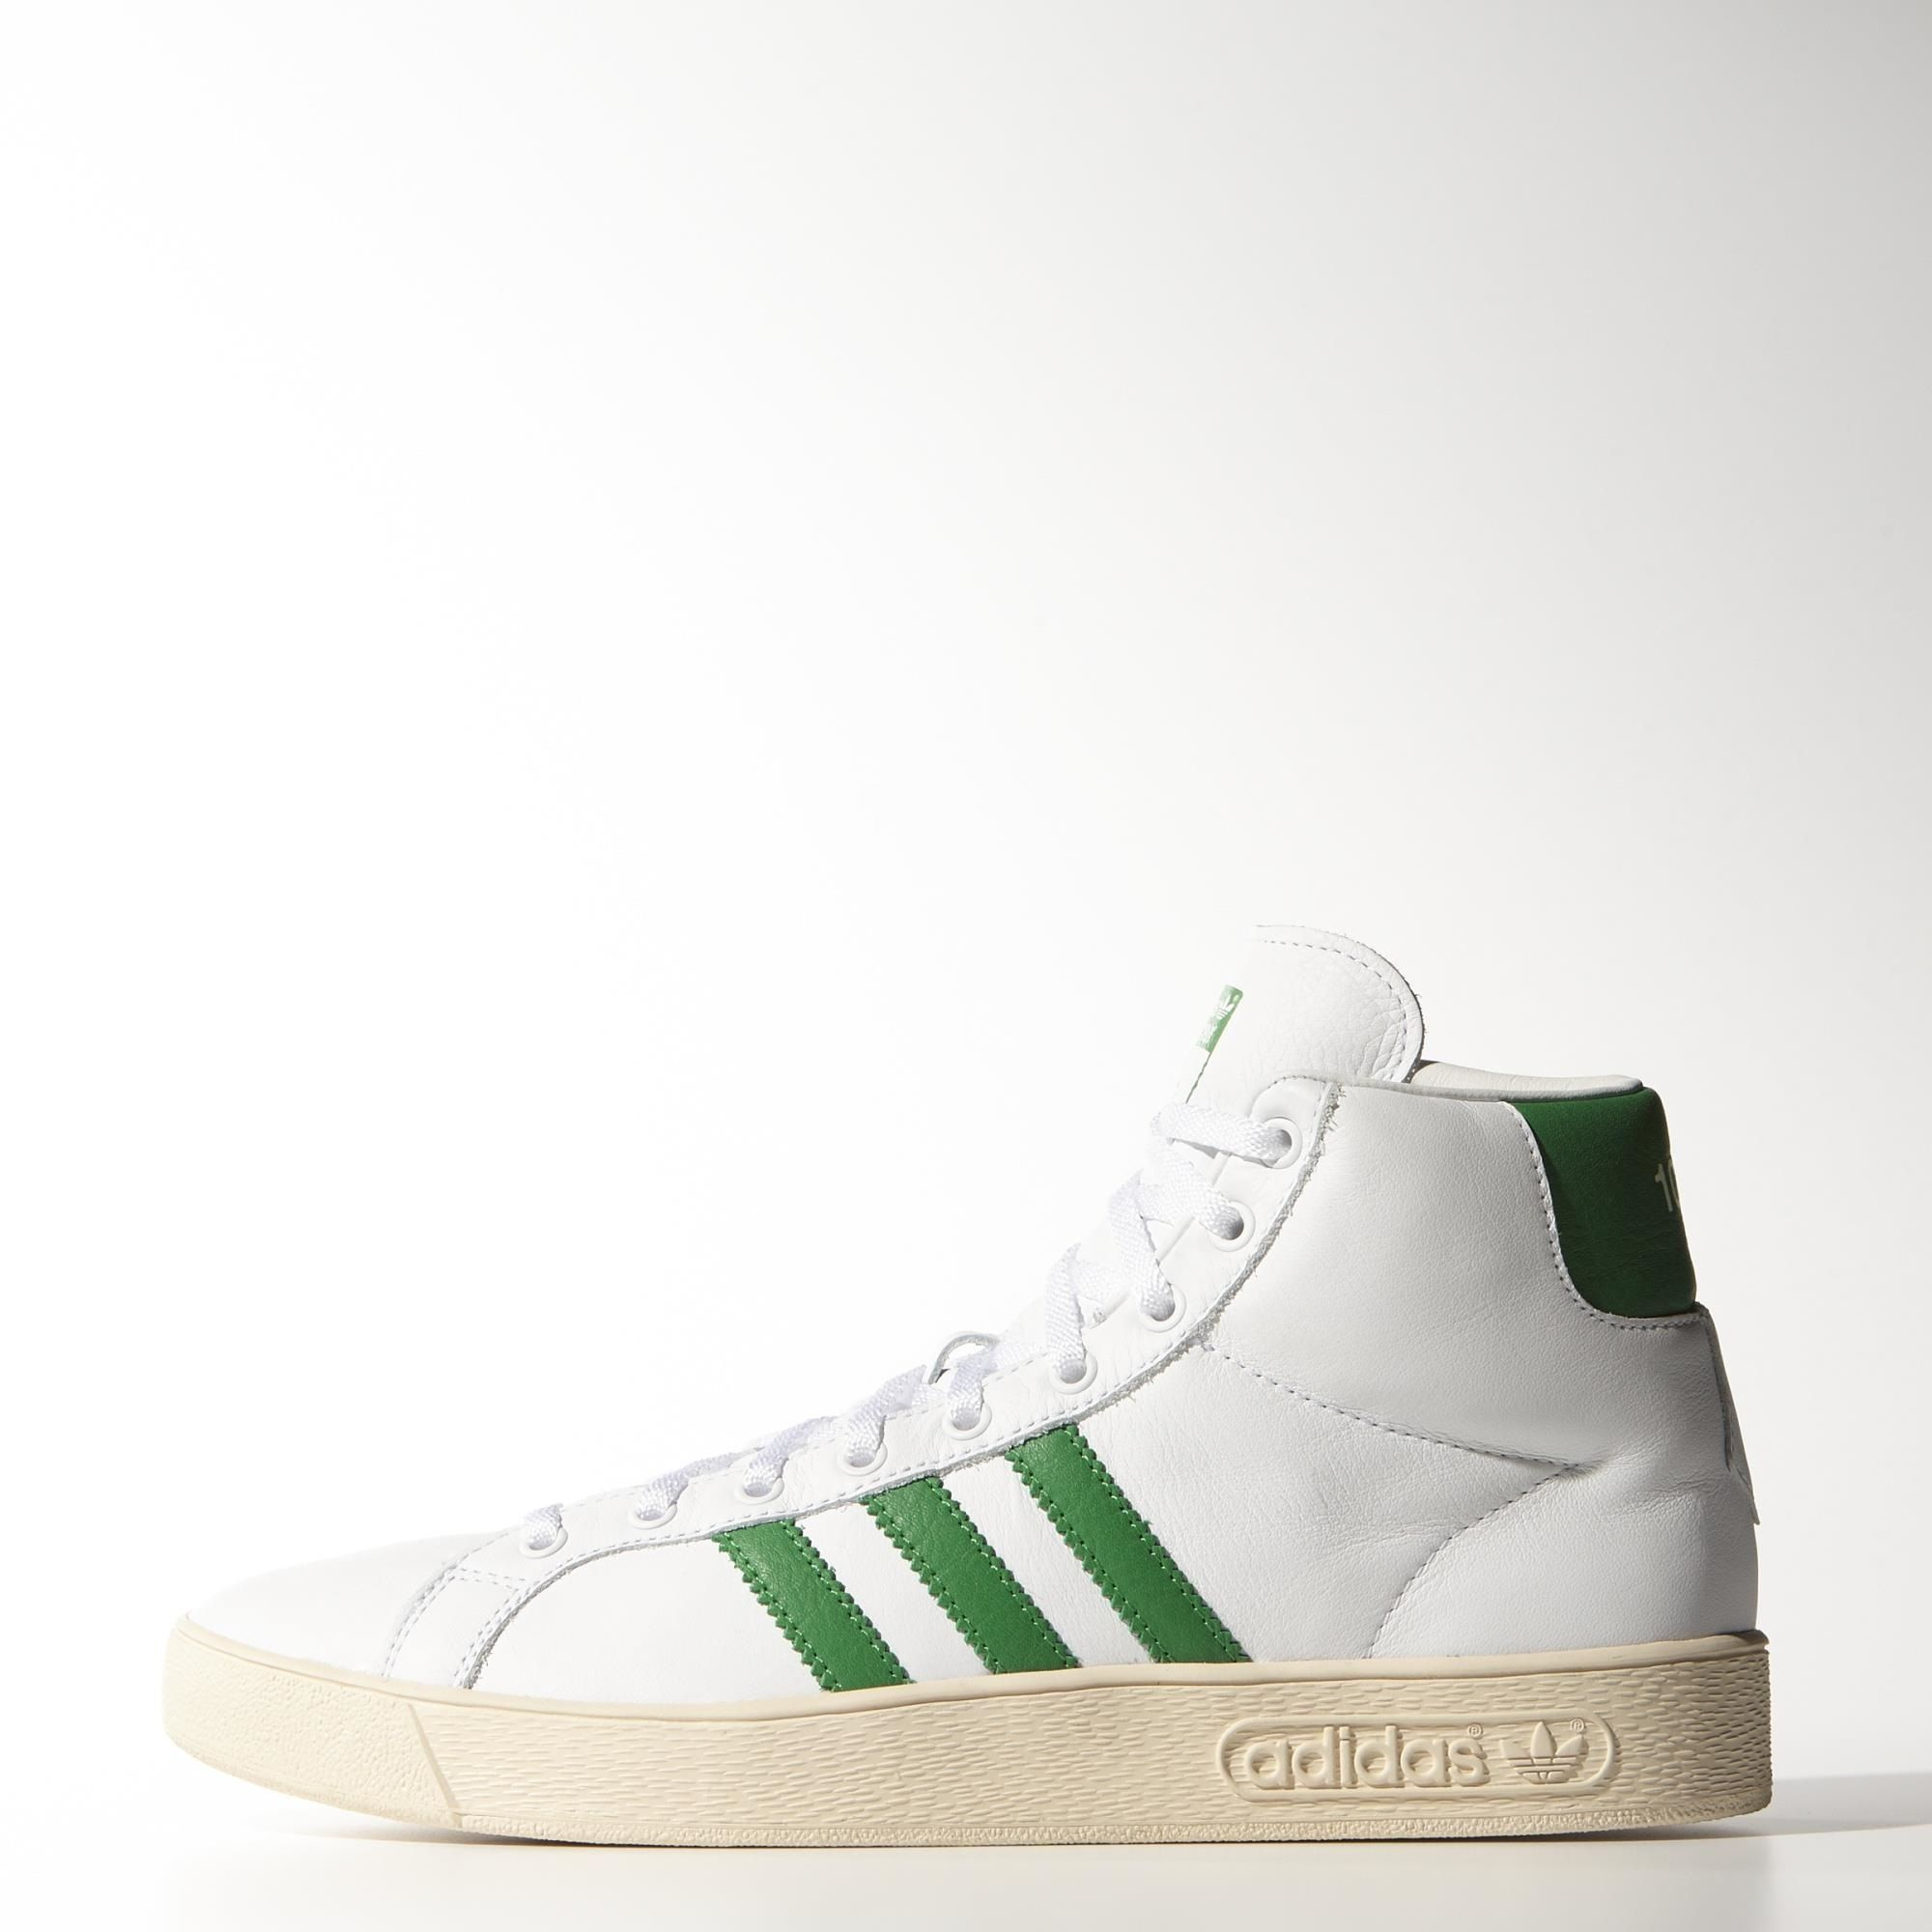 adidas Monte Carlo Mid Shoes | adidas US